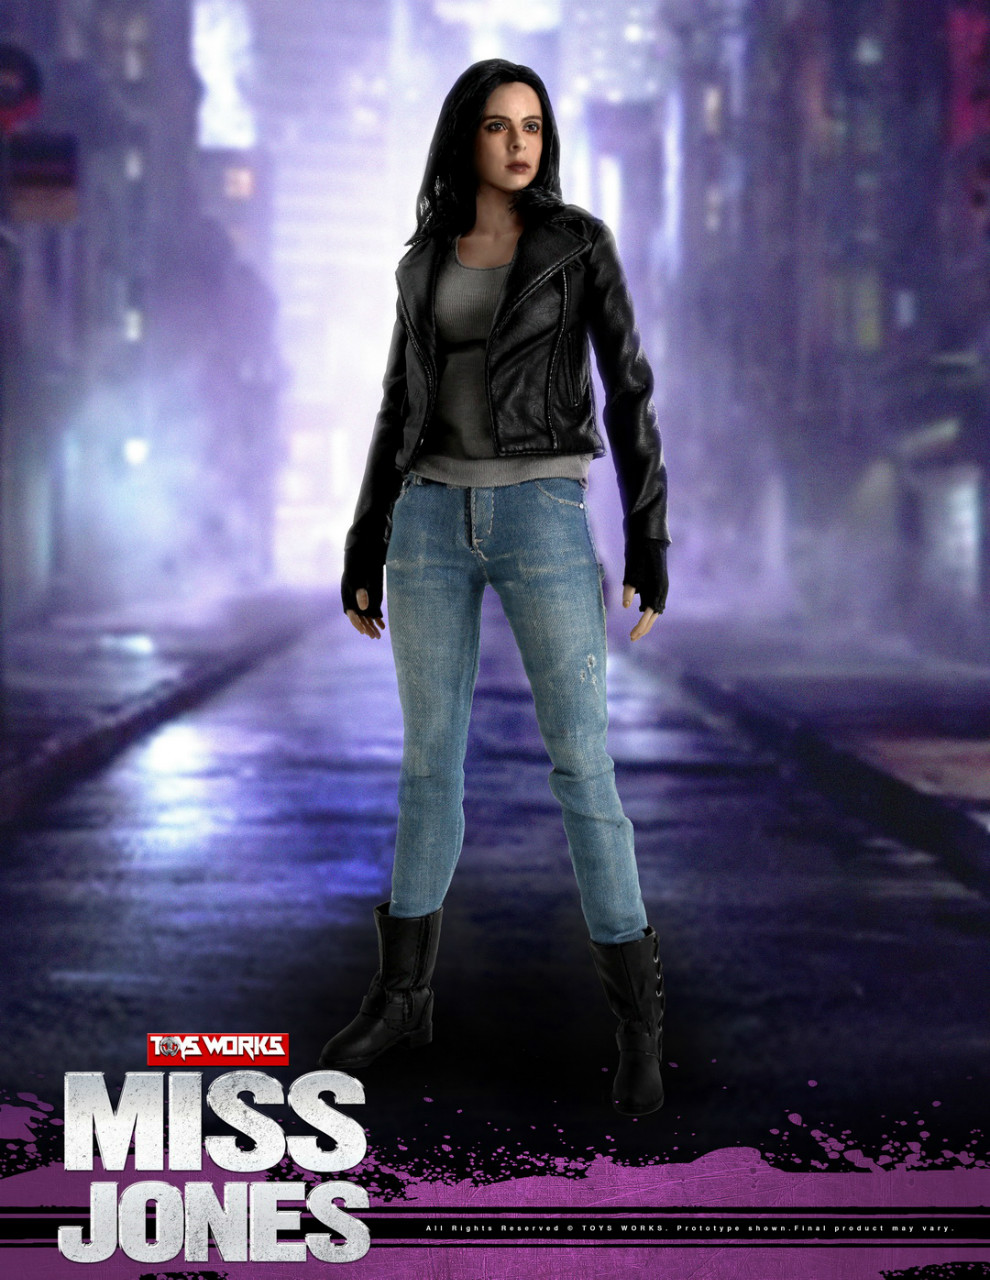 tv - NEW PRODUCT: TOYS WORKS New: 1/6 Miss Jones Miss Jones can move TW007 19163611